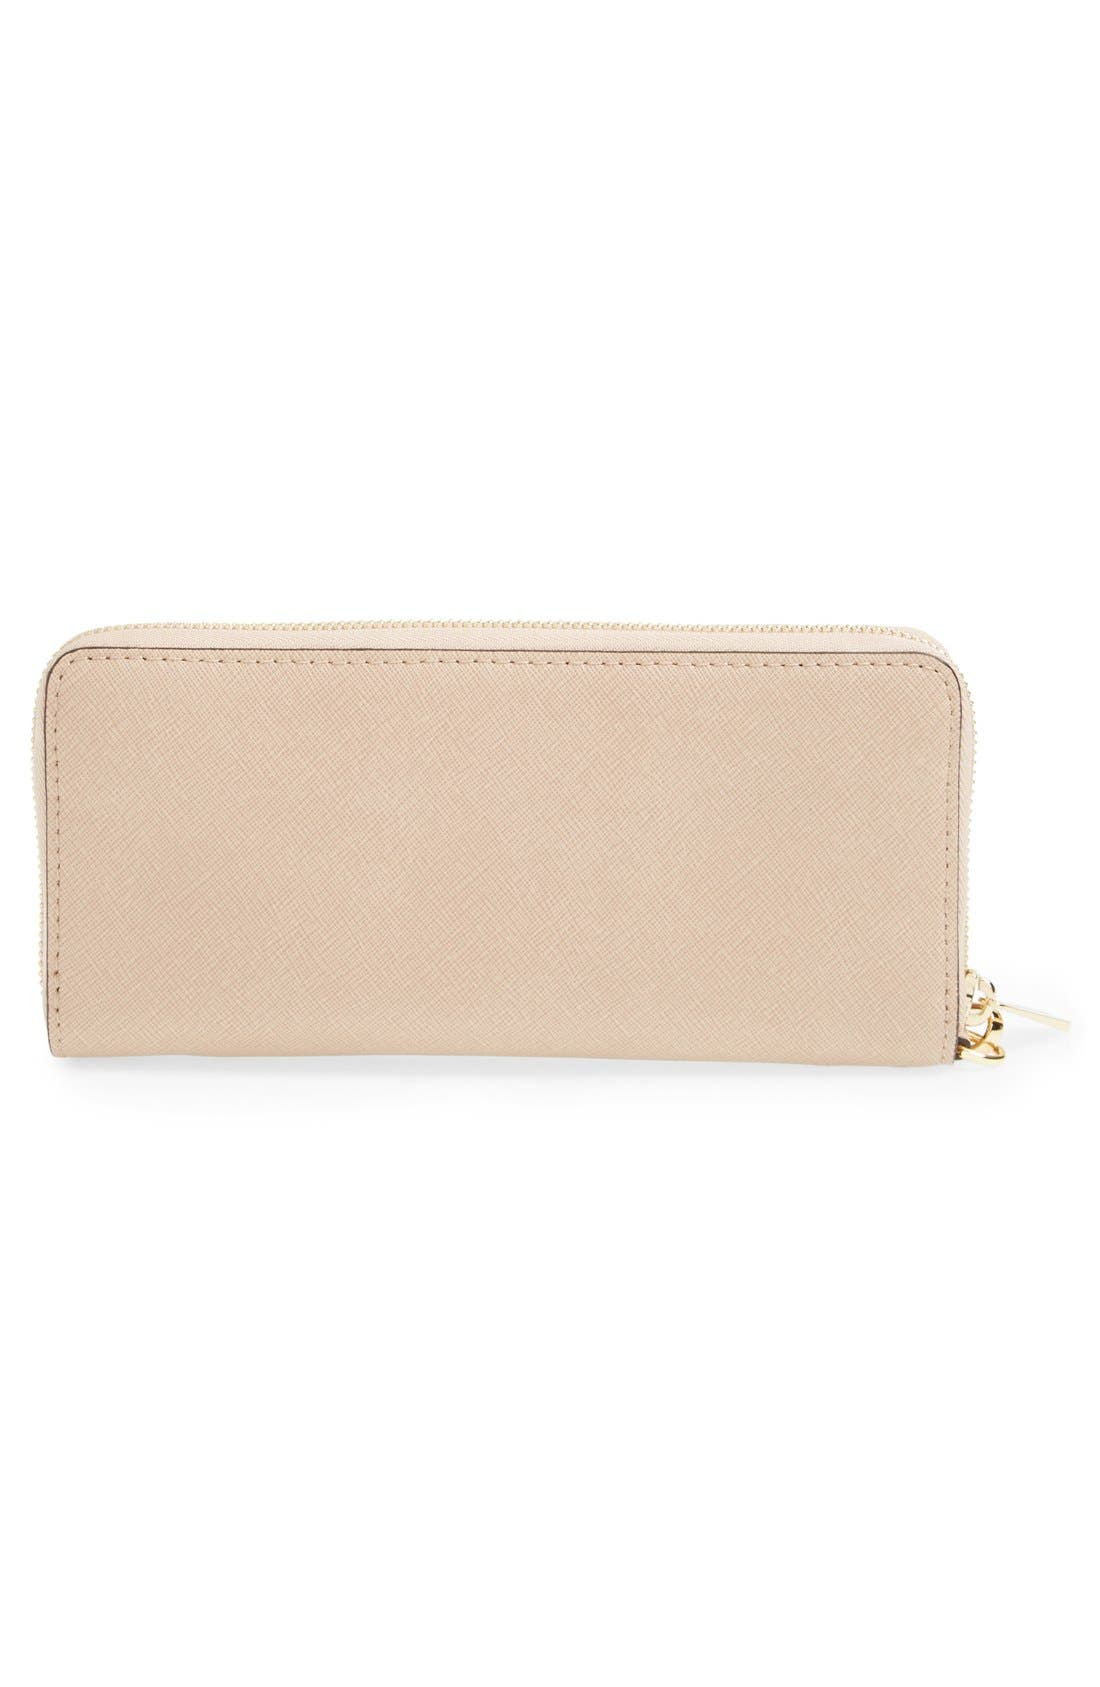 'Jet Set' Leather Travel Wallet,                             Alternate thumbnail 57, color,